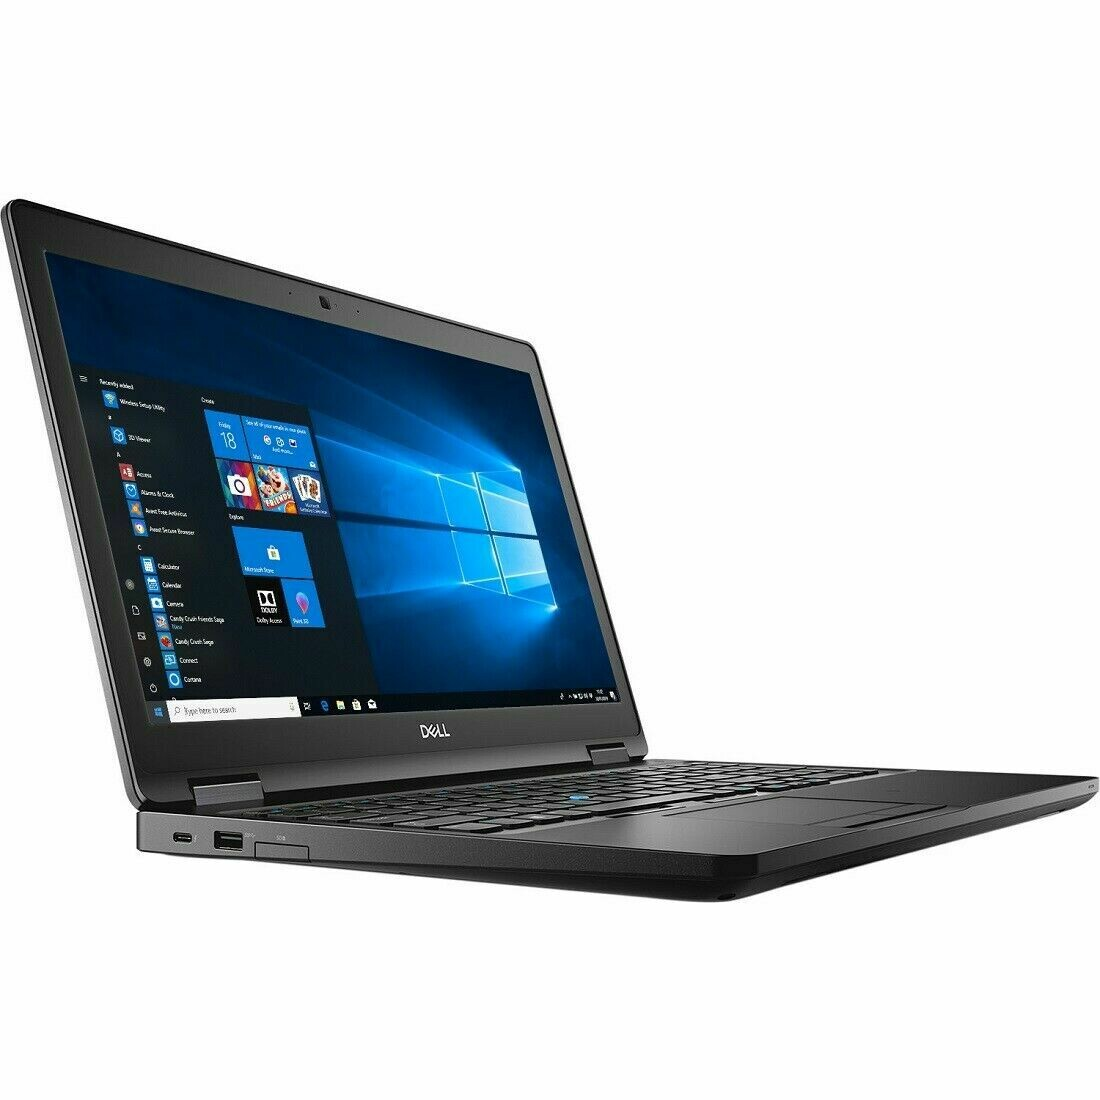 DELL LATITUDE 5590 15.6''-i5 processor-windows 10 pro